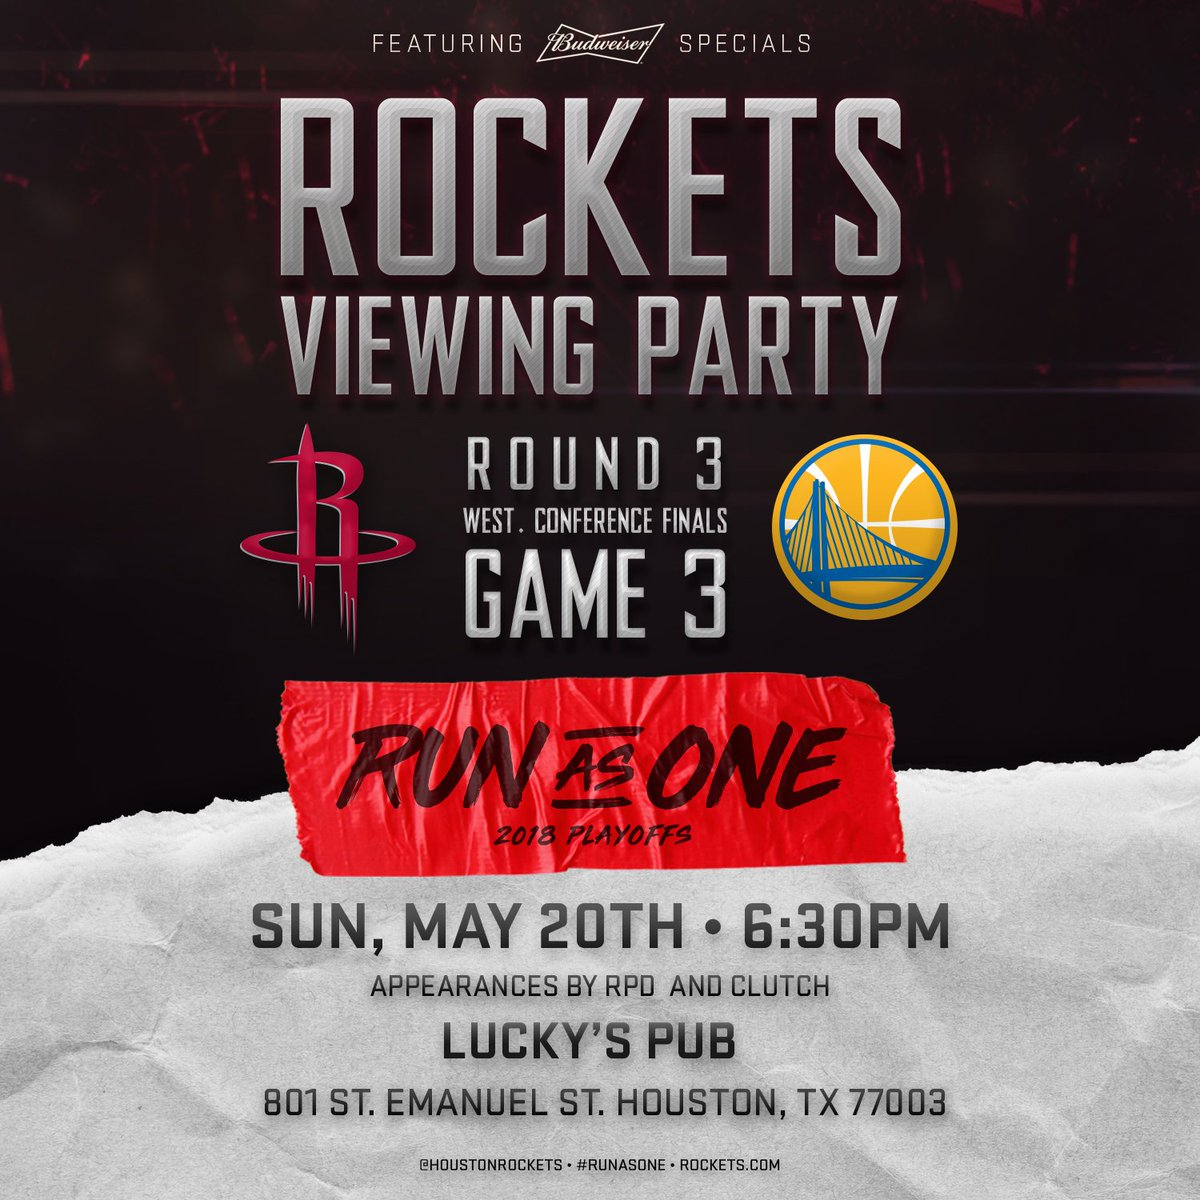 Join us at our viewing party for Game 3 on Sunday night, featuring @budweiserusa specials, a 30 foot screen, appearances by @OfficialRPD, and more!  For details on locations please visit: Rockets.com/Viewing-Party  #RunAsOne 🚀